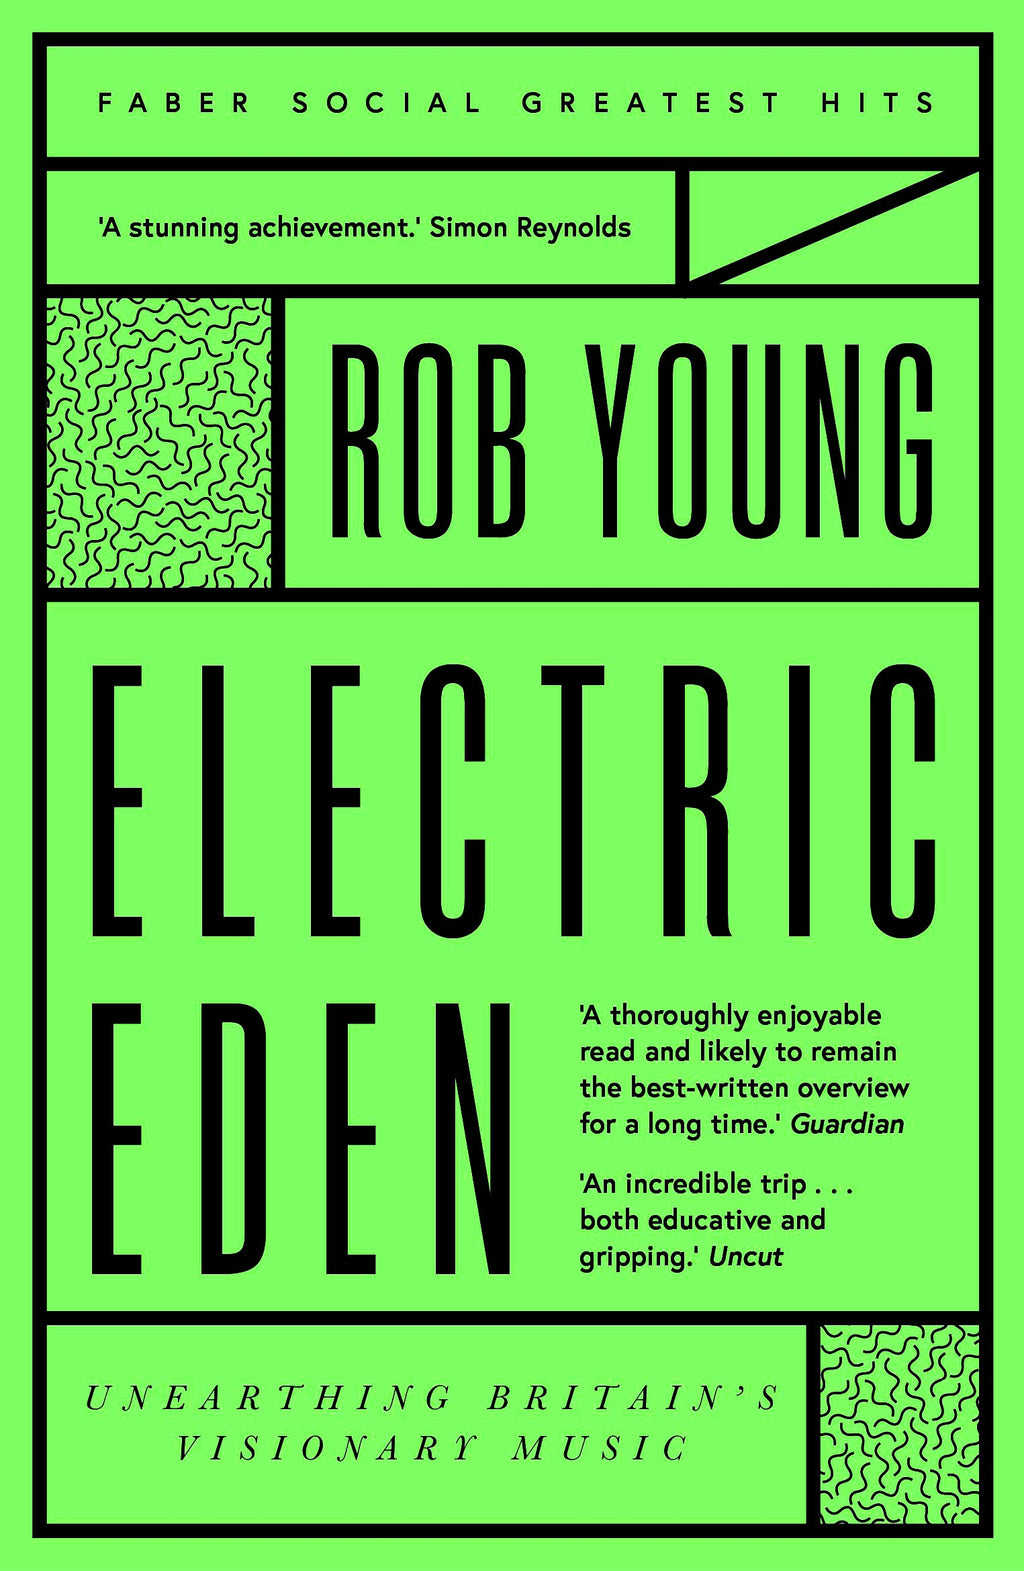 Rob Young - Electric Eden [Faber Social Greatest Hits]